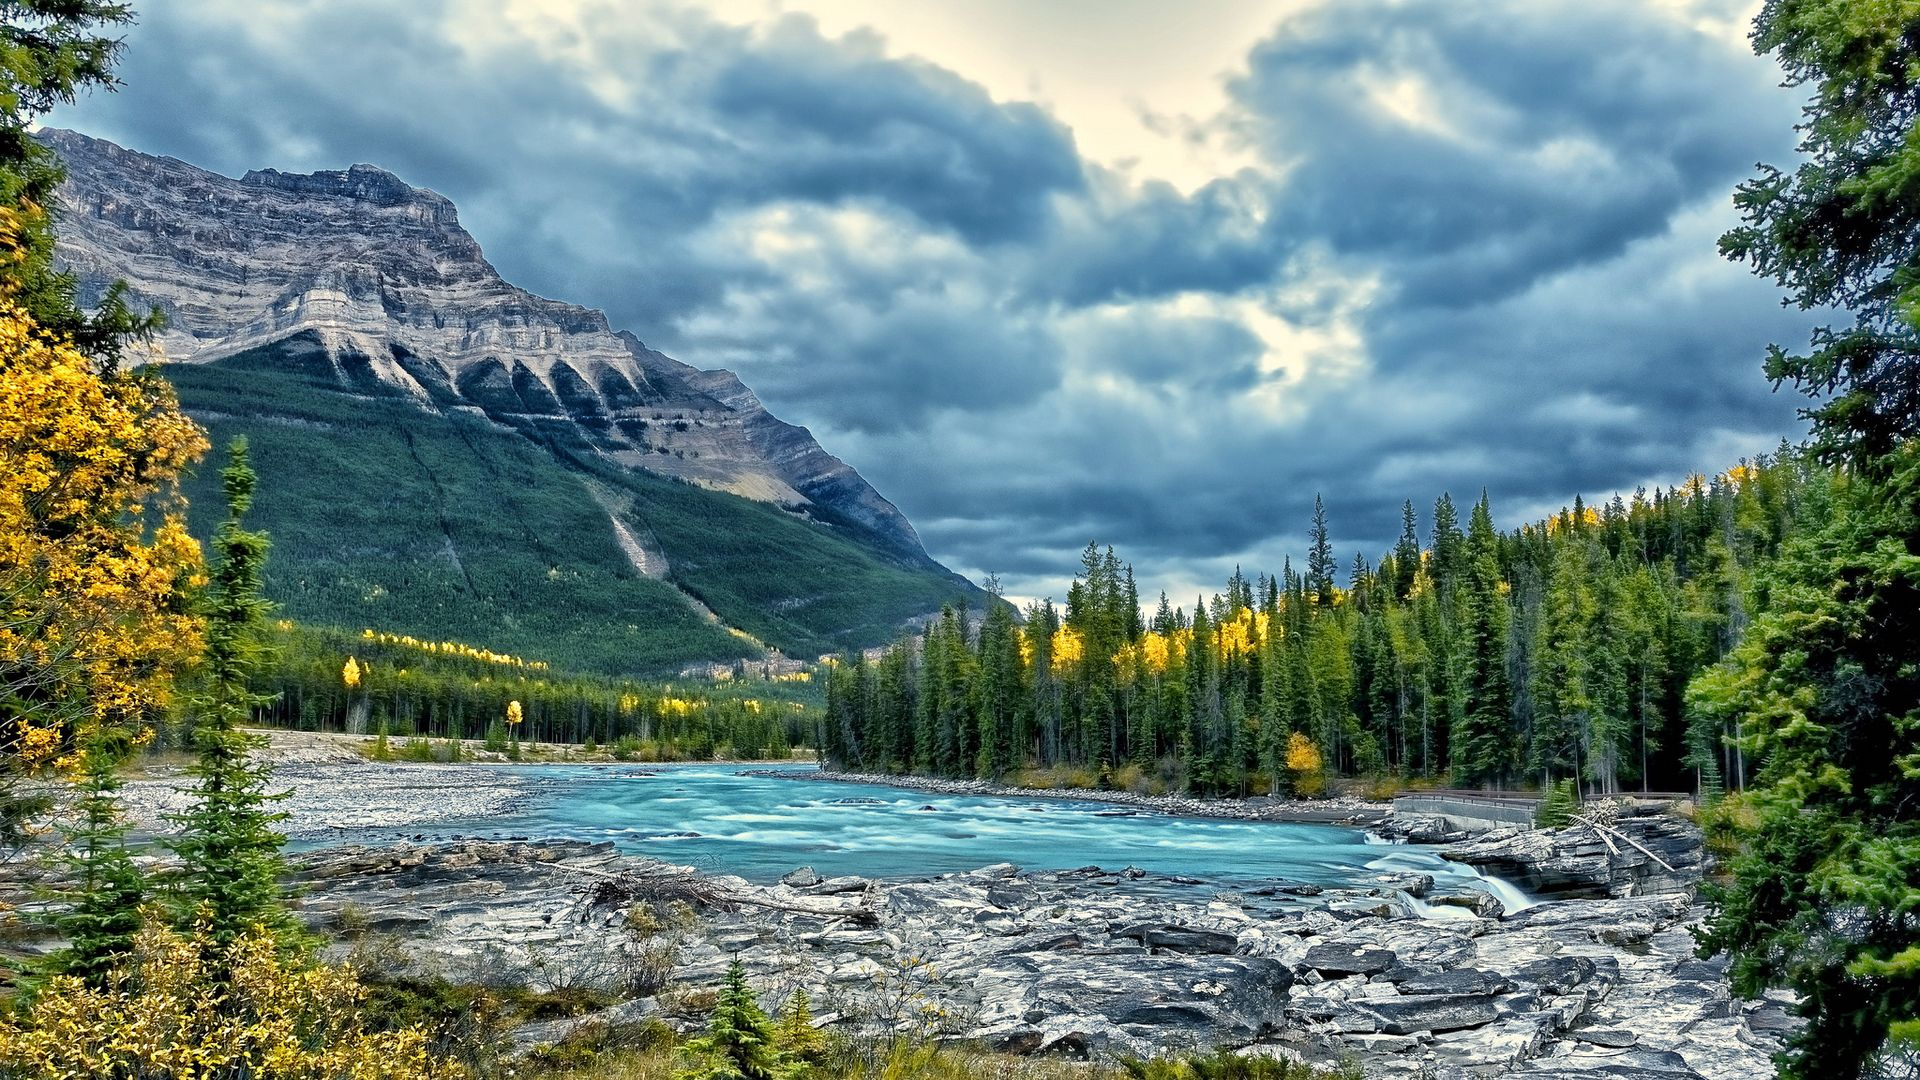 Browse The Beauty Of Jasper National Park In Alberta Canada Jasper National Park Canada Scenic Art Scenic